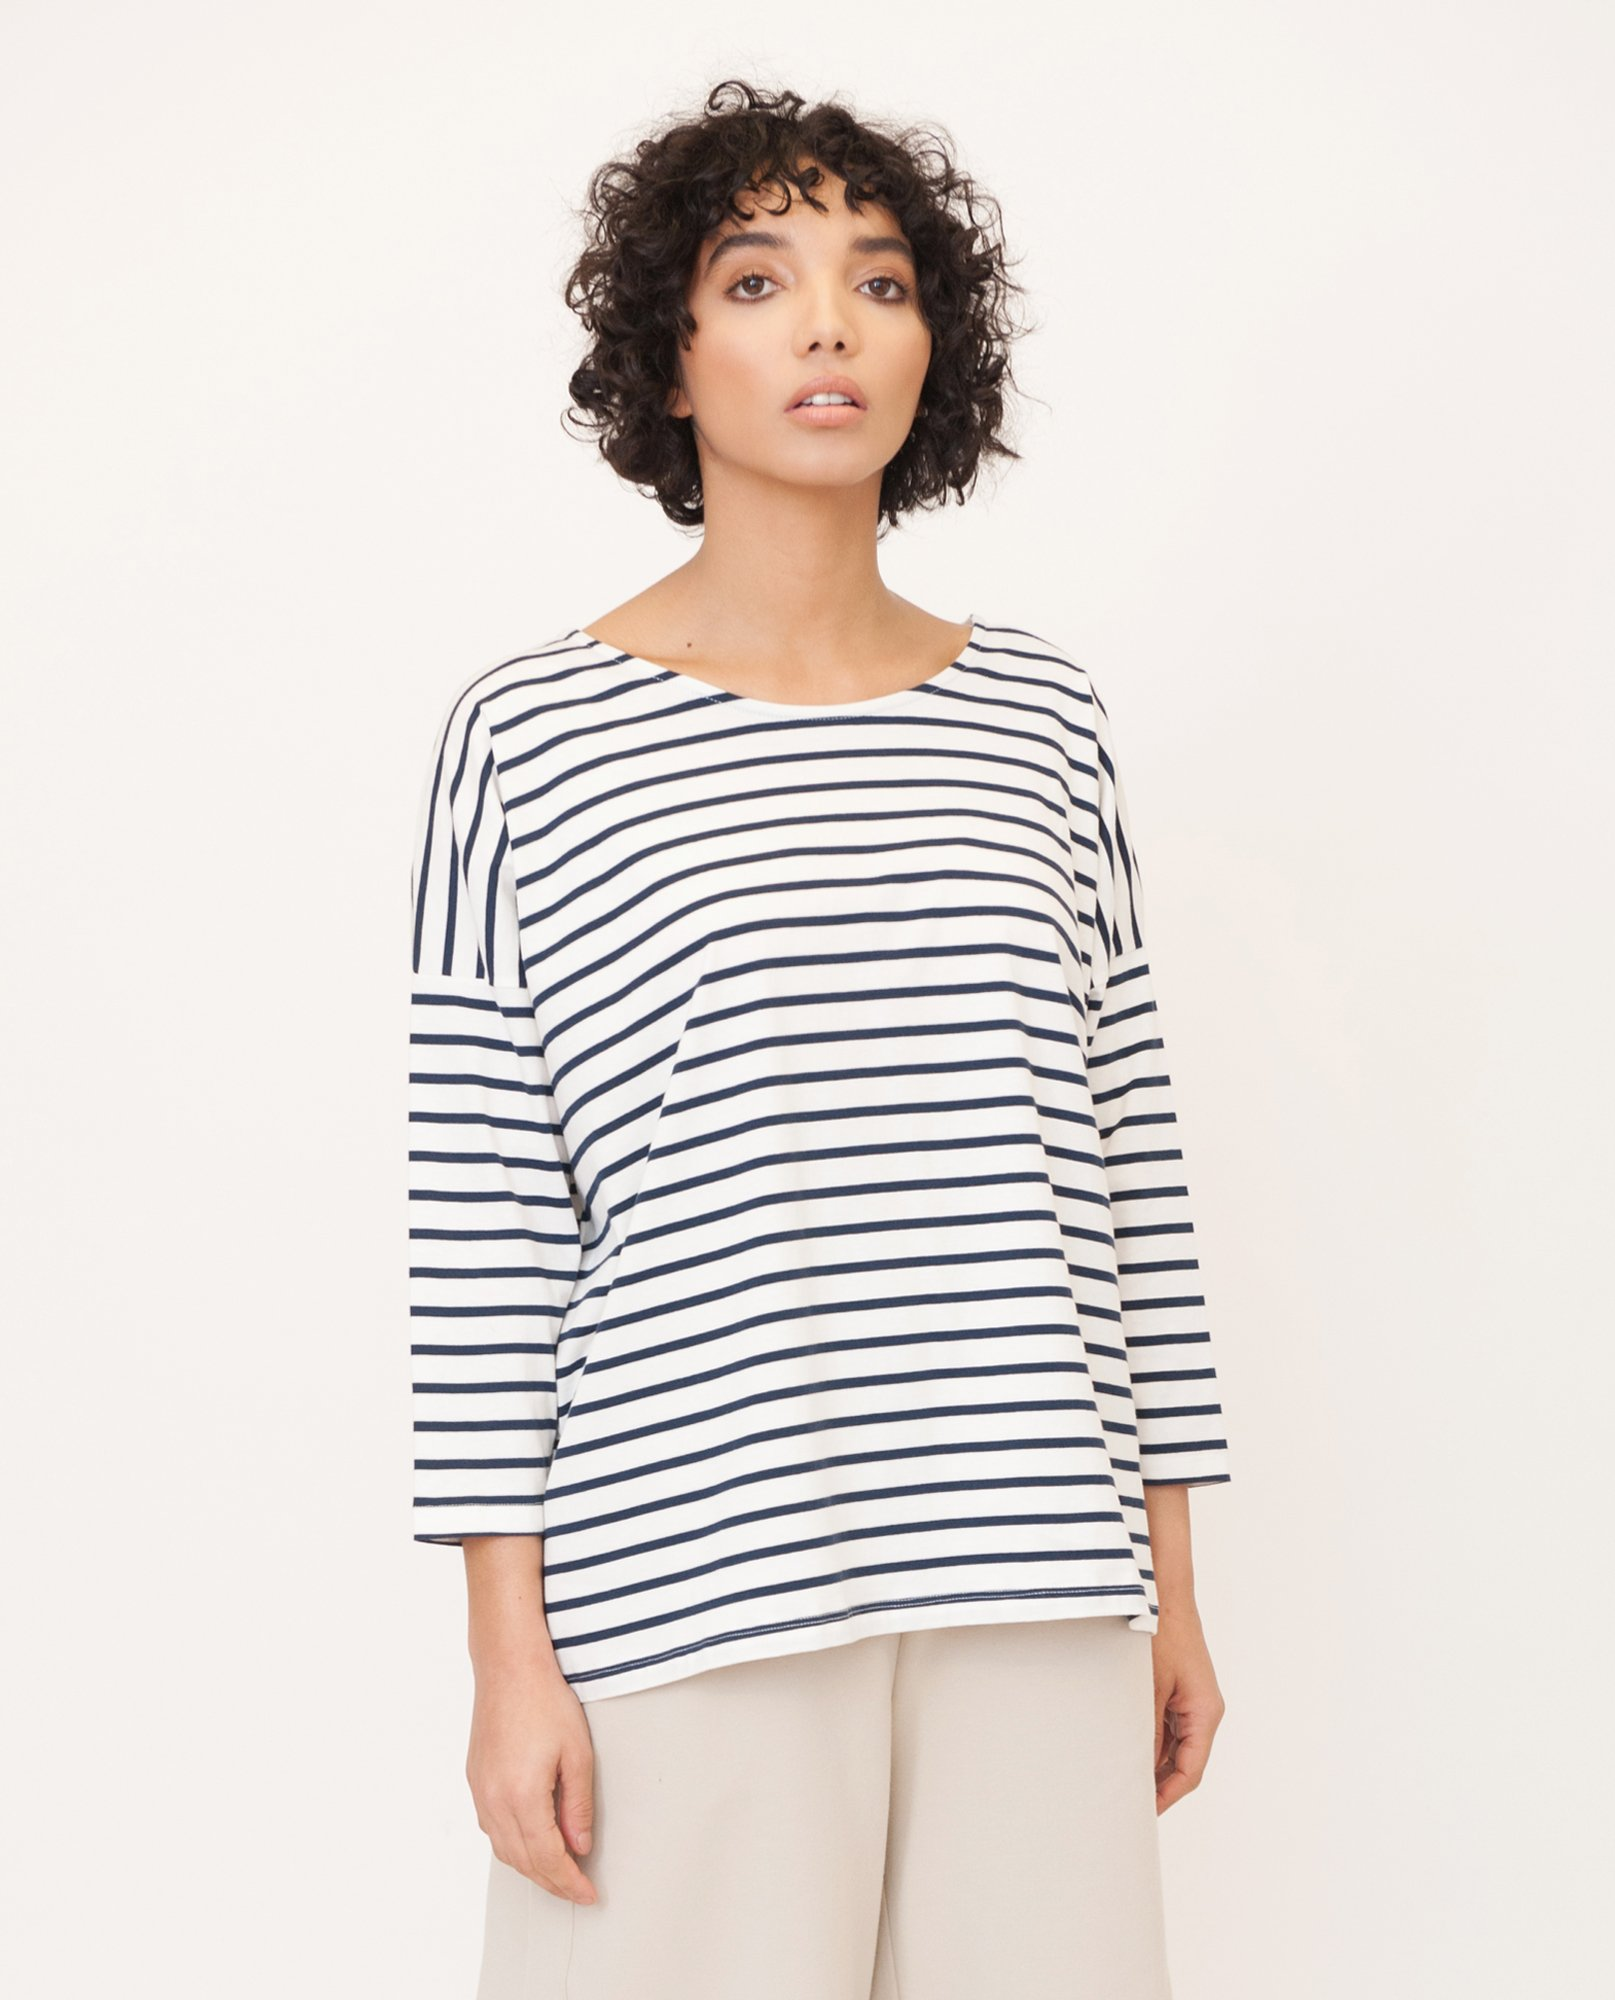 ROSIE Organic Cotton Top In Navy And Cream from Beaumont Organic